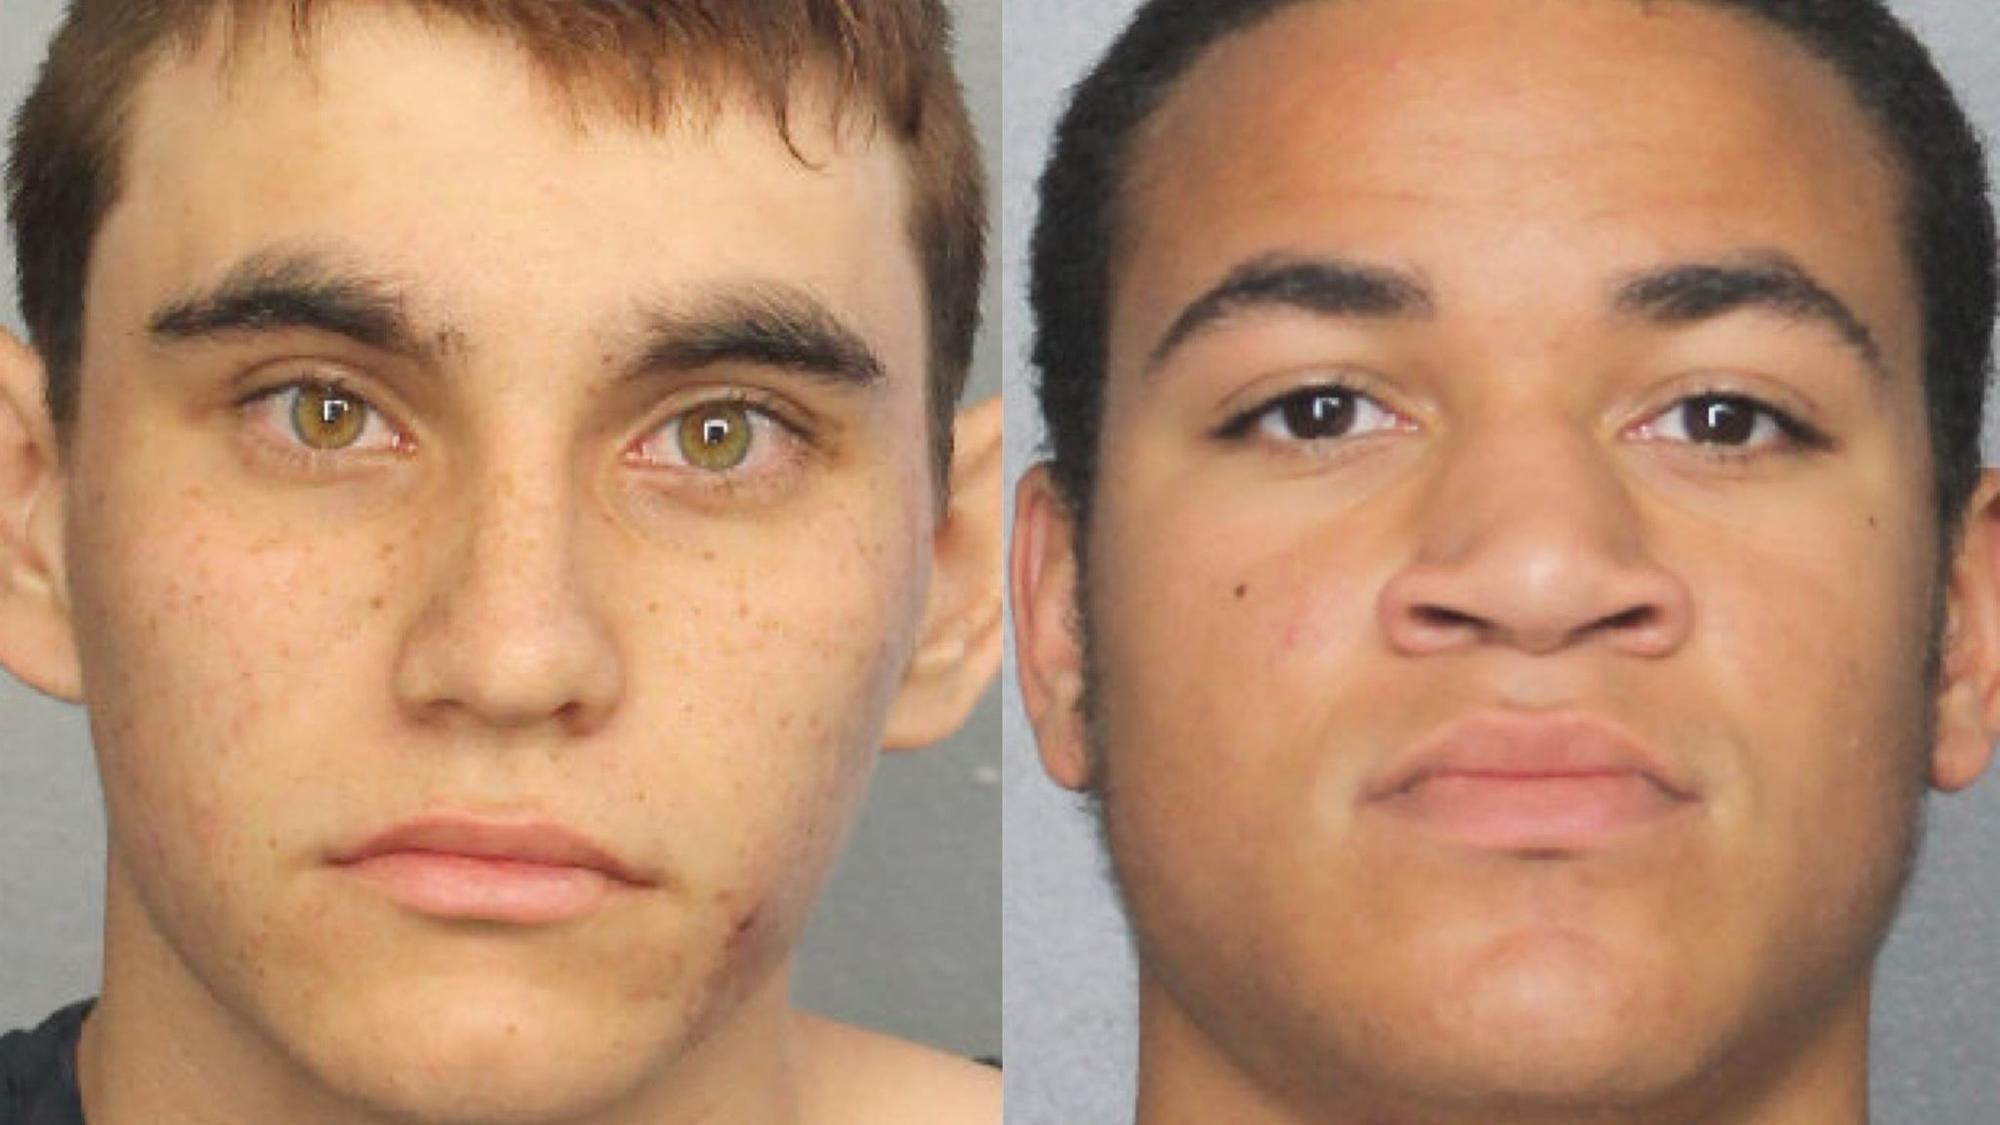 Students react after Nikolas Cruz's brother arrested, accused of trespassing at Marjory Stoneman Douglas